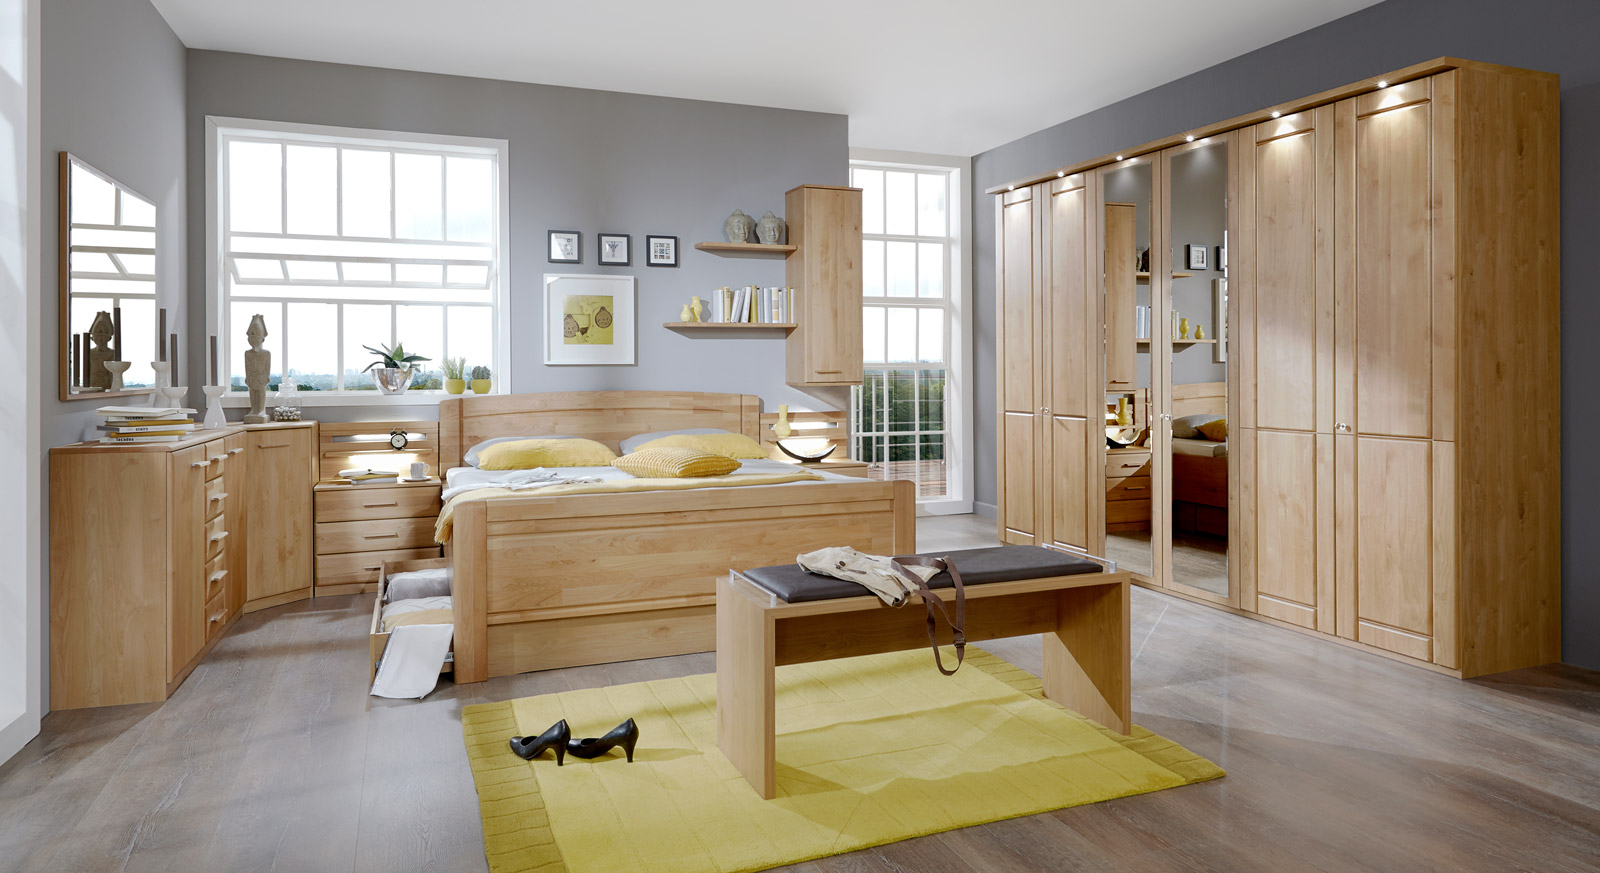 bettbank aus erle dekor als gepolsterte sitzgelegenheit trikomo. Black Bedroom Furniture Sets. Home Design Ideas